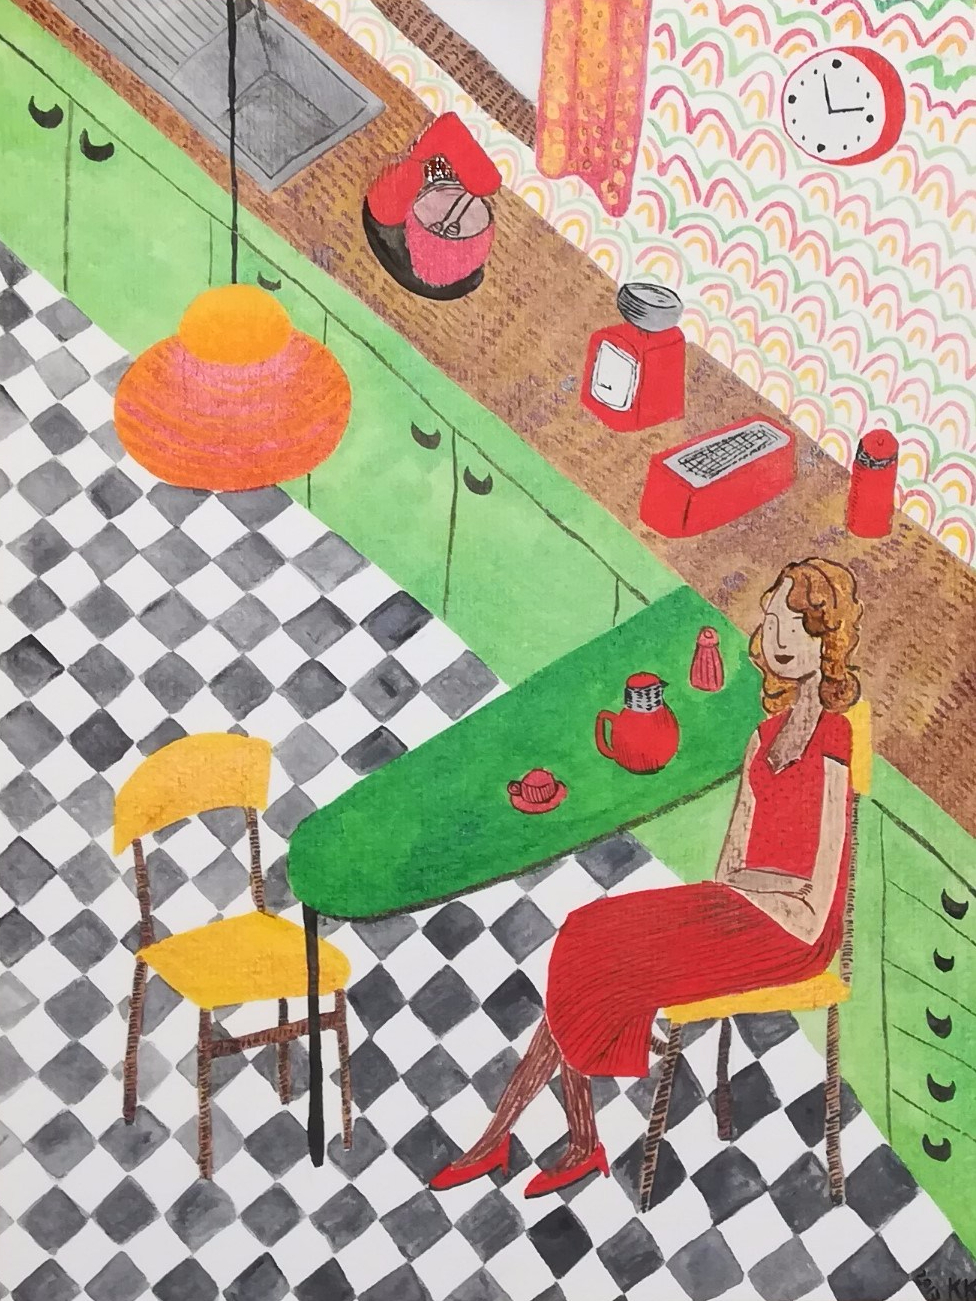 1950s kitchen illustration